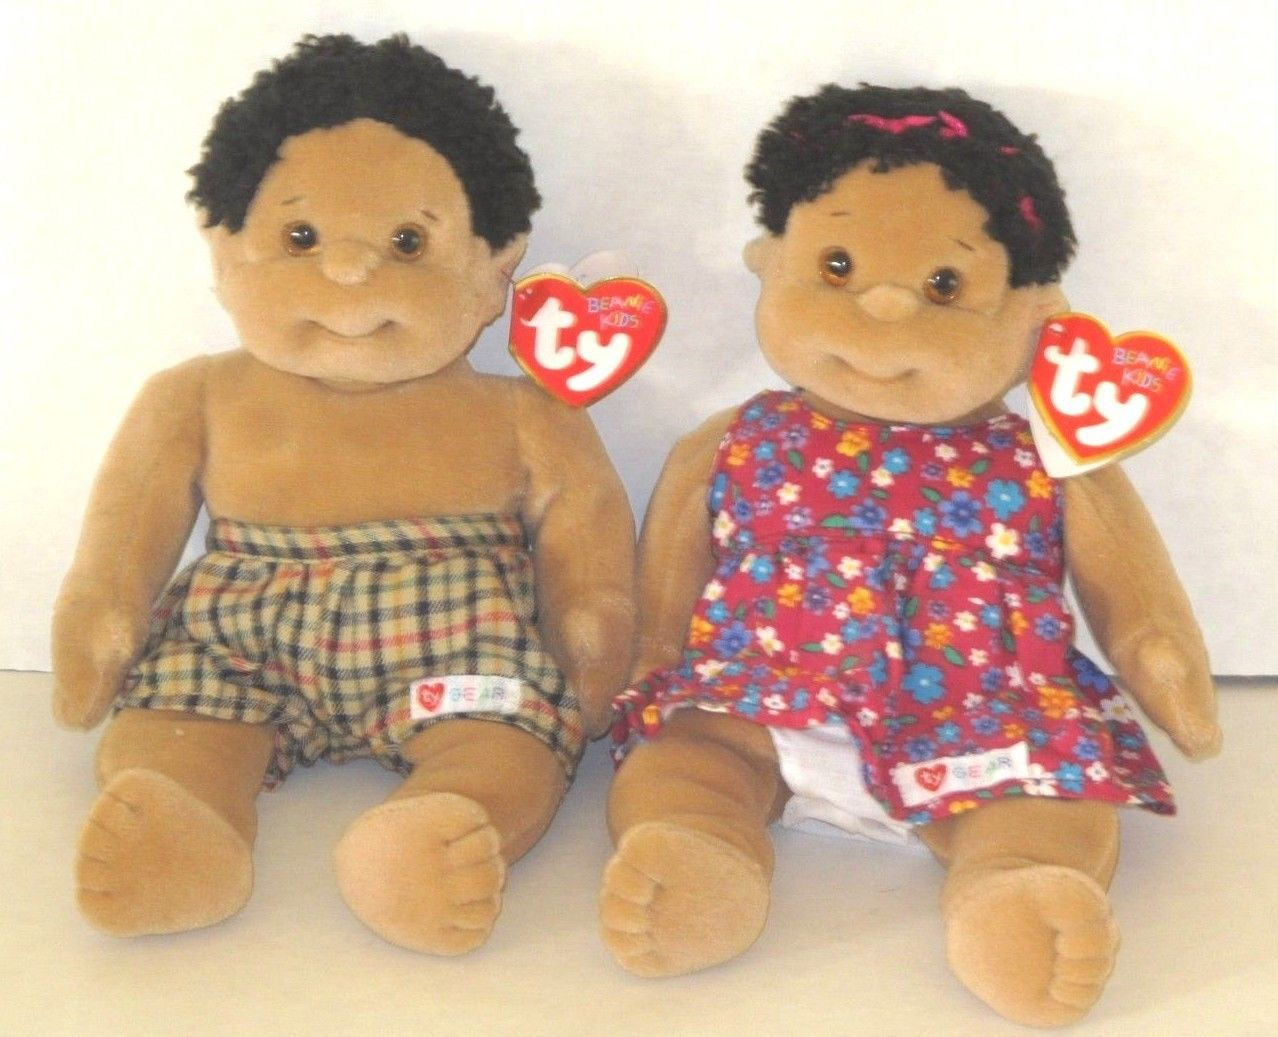 Beanie Kids 7111  Cutie And Rascal Ty Beanie Kids Doll W Tags - New -  BUY  IT NOW ONLY   16.95 on eBay! 1576efd1cd5